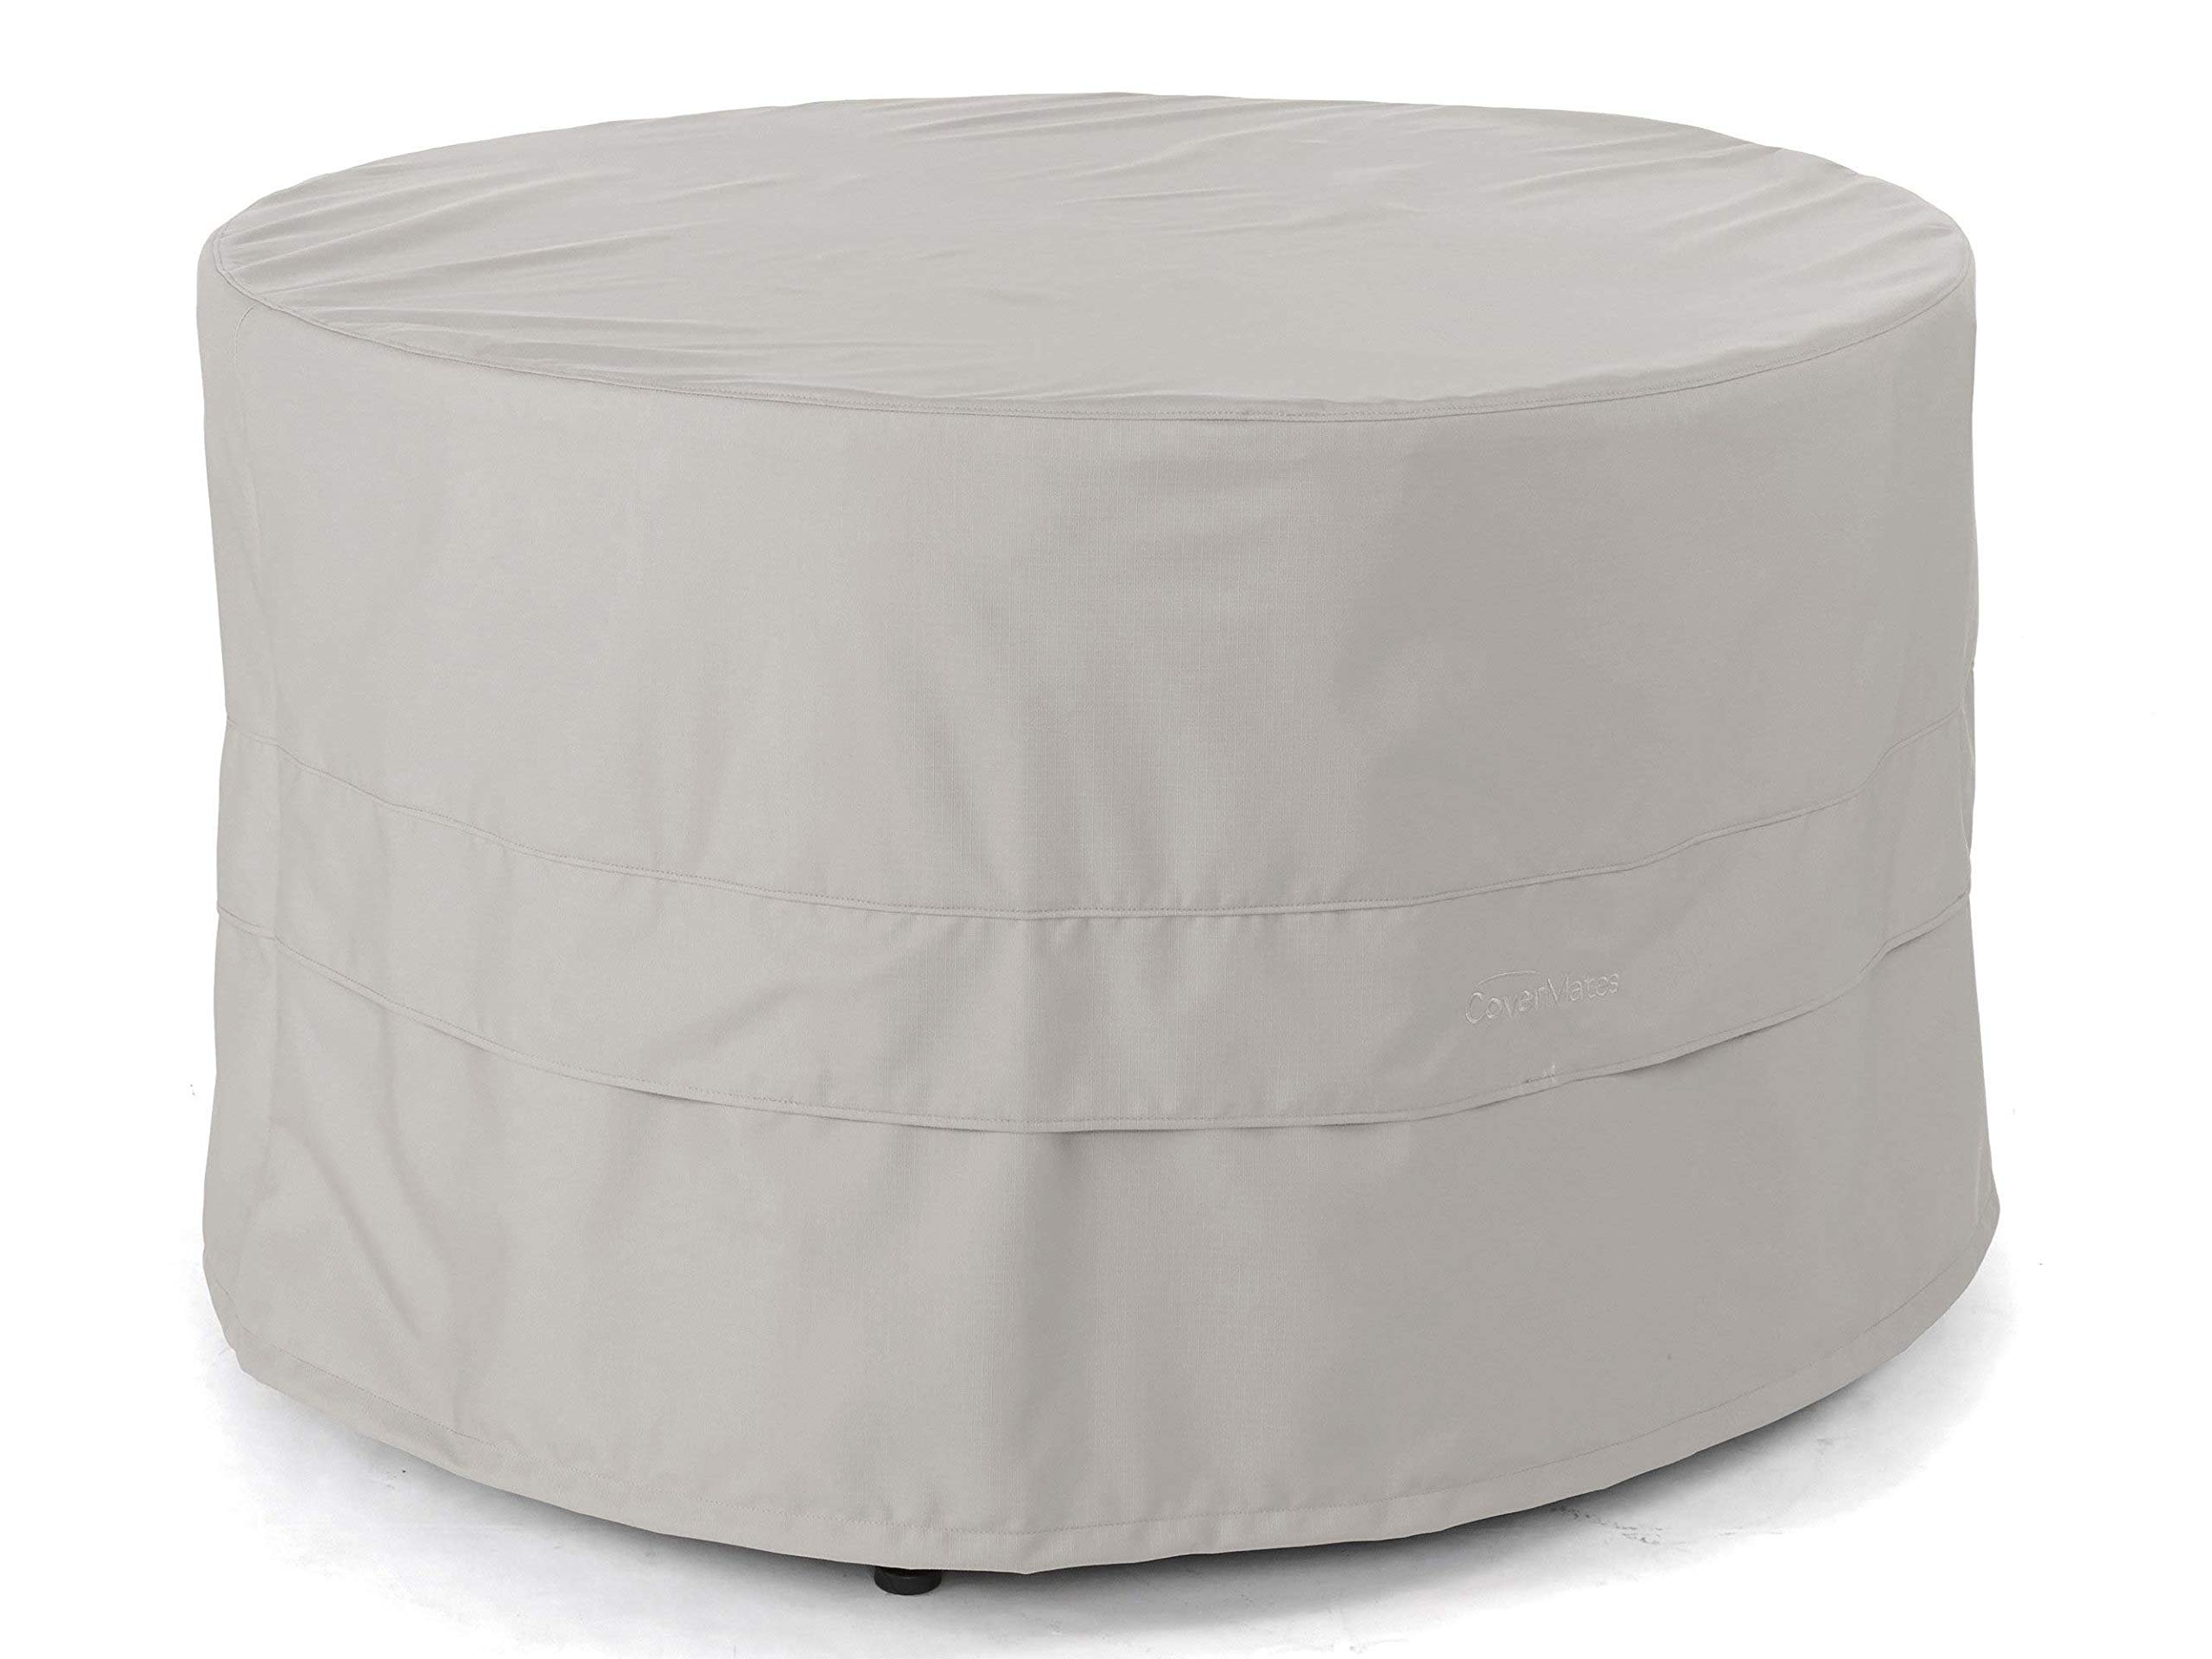 CoverMates - Round Dining Table Cover - Fits 72 Inch Diameter and 30 Inch Height - Ultima Ripstop - 600D Fade Resistant Poly - Breathable Covered Ventilations -7 Year Warranty - Ripstop Grey